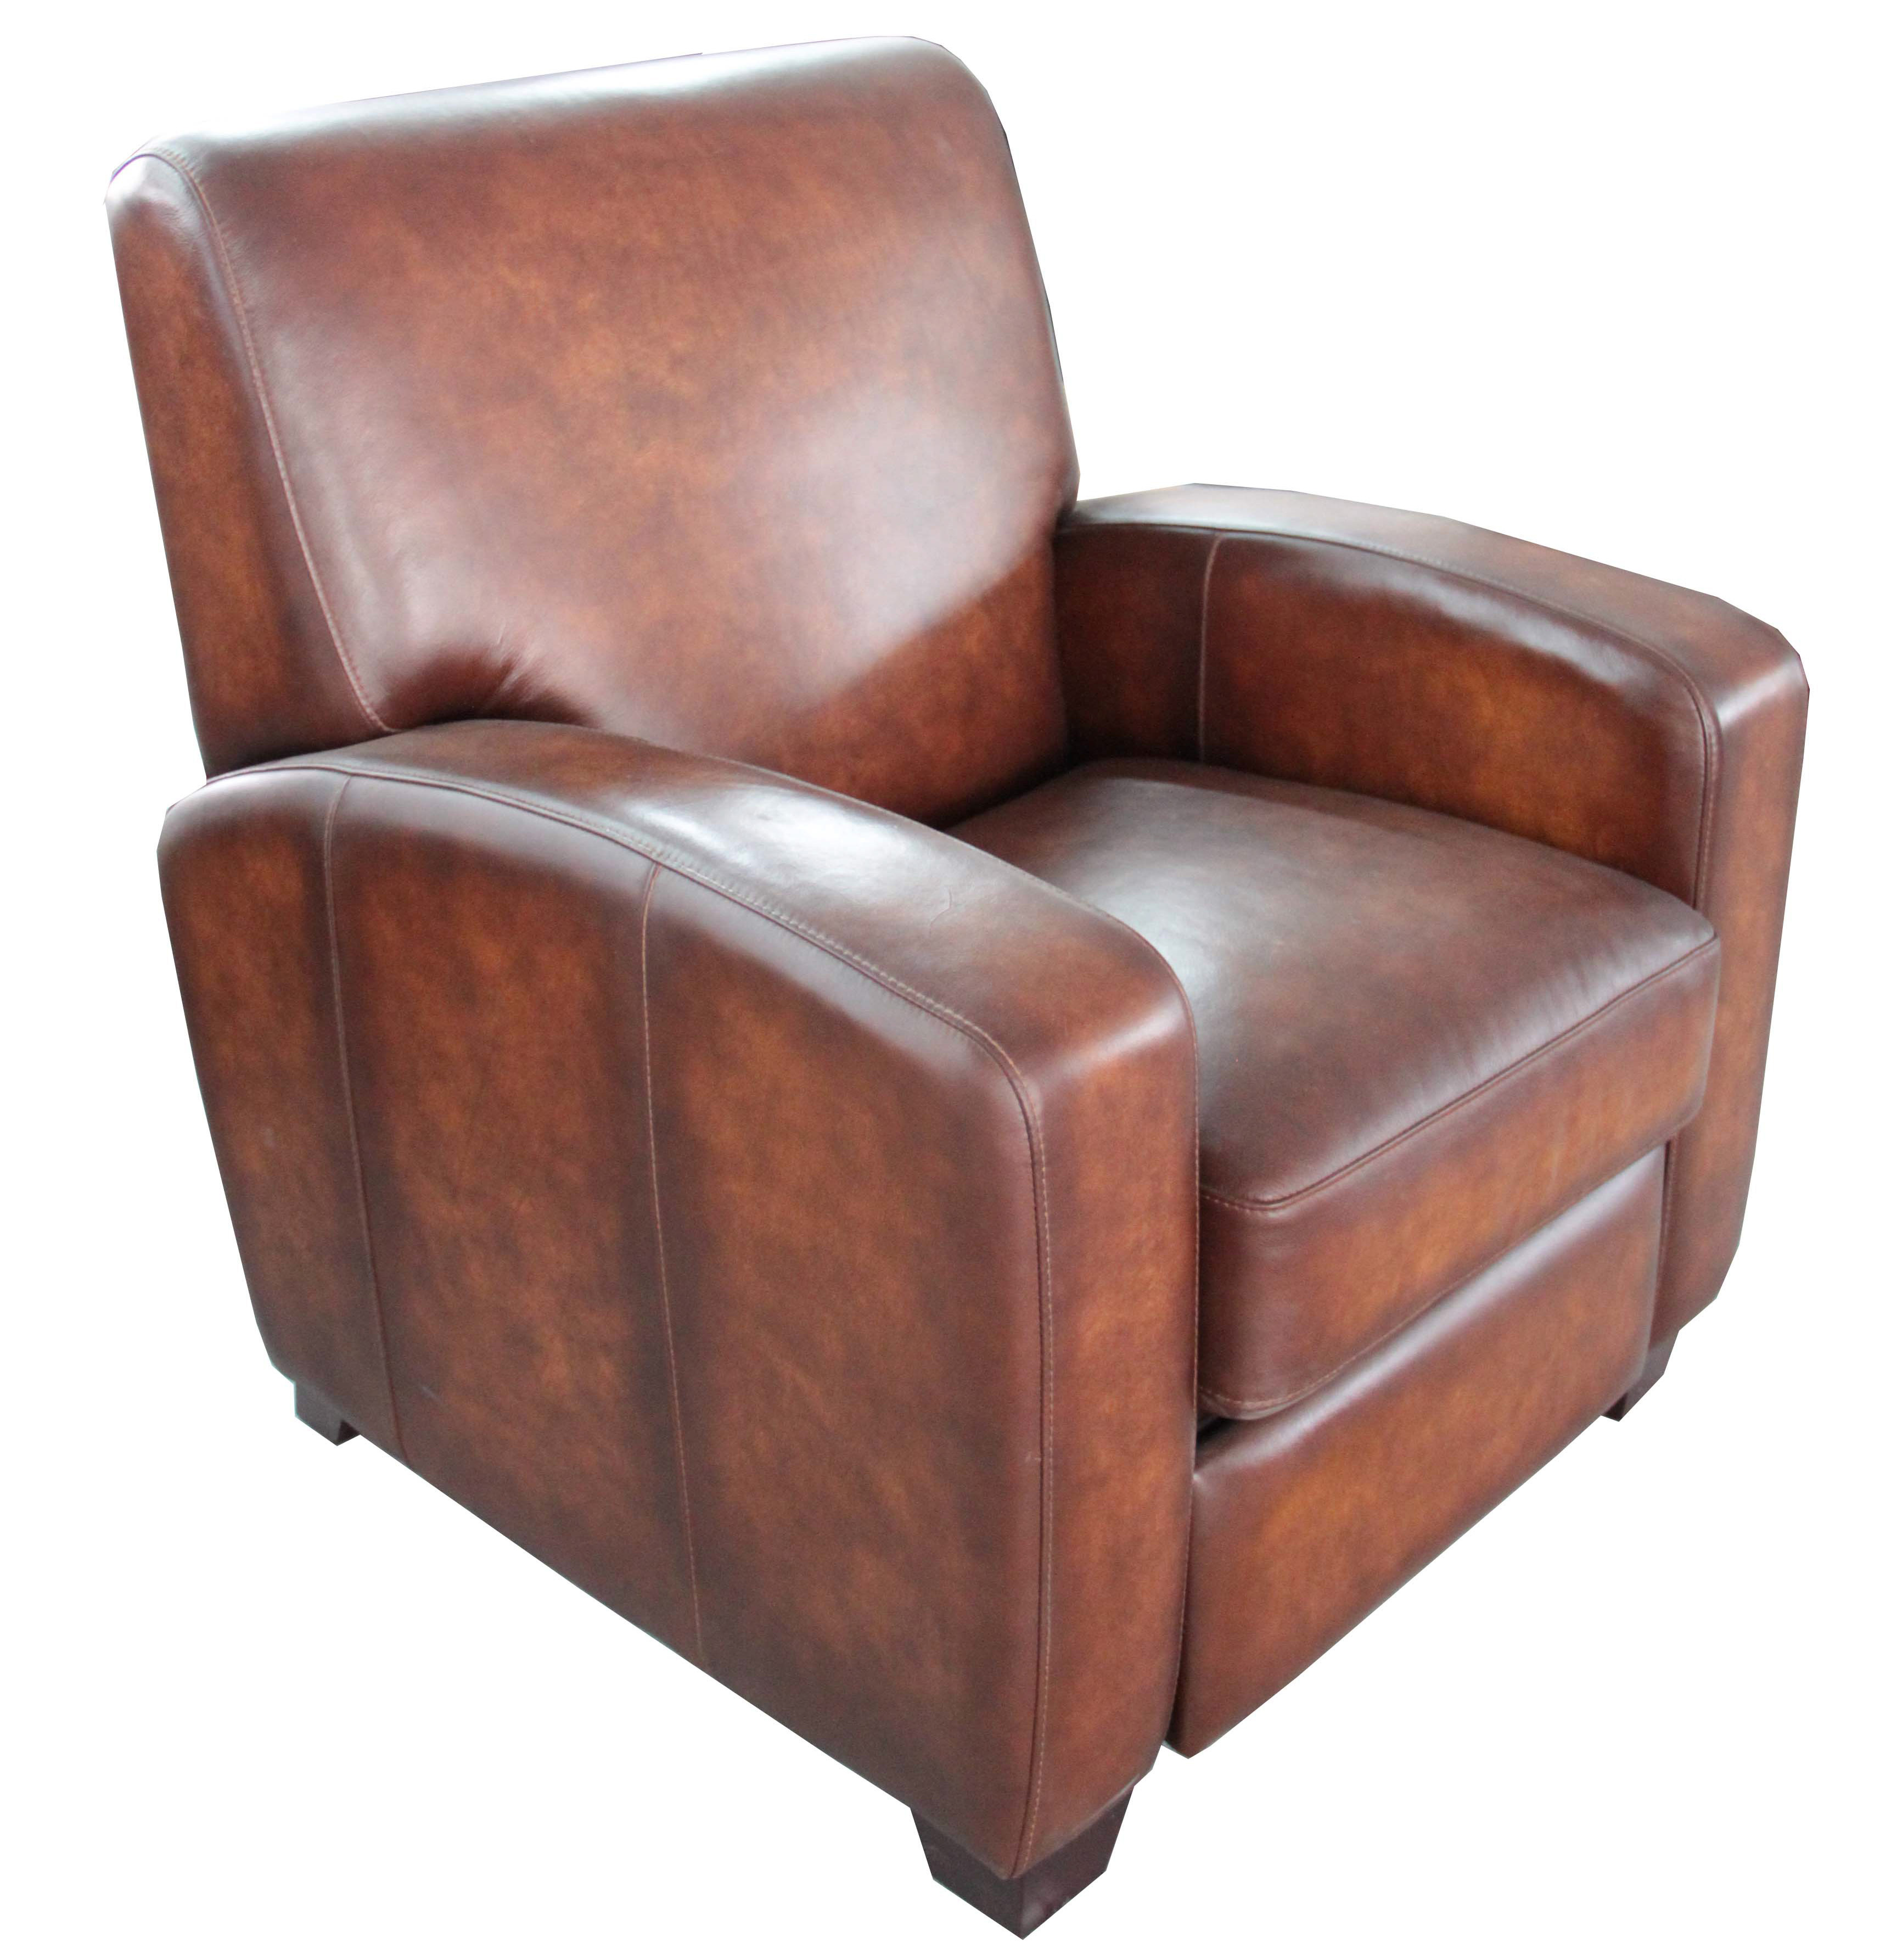 leather recliner chairs hanging chair and stand barcalounger montego bay ii